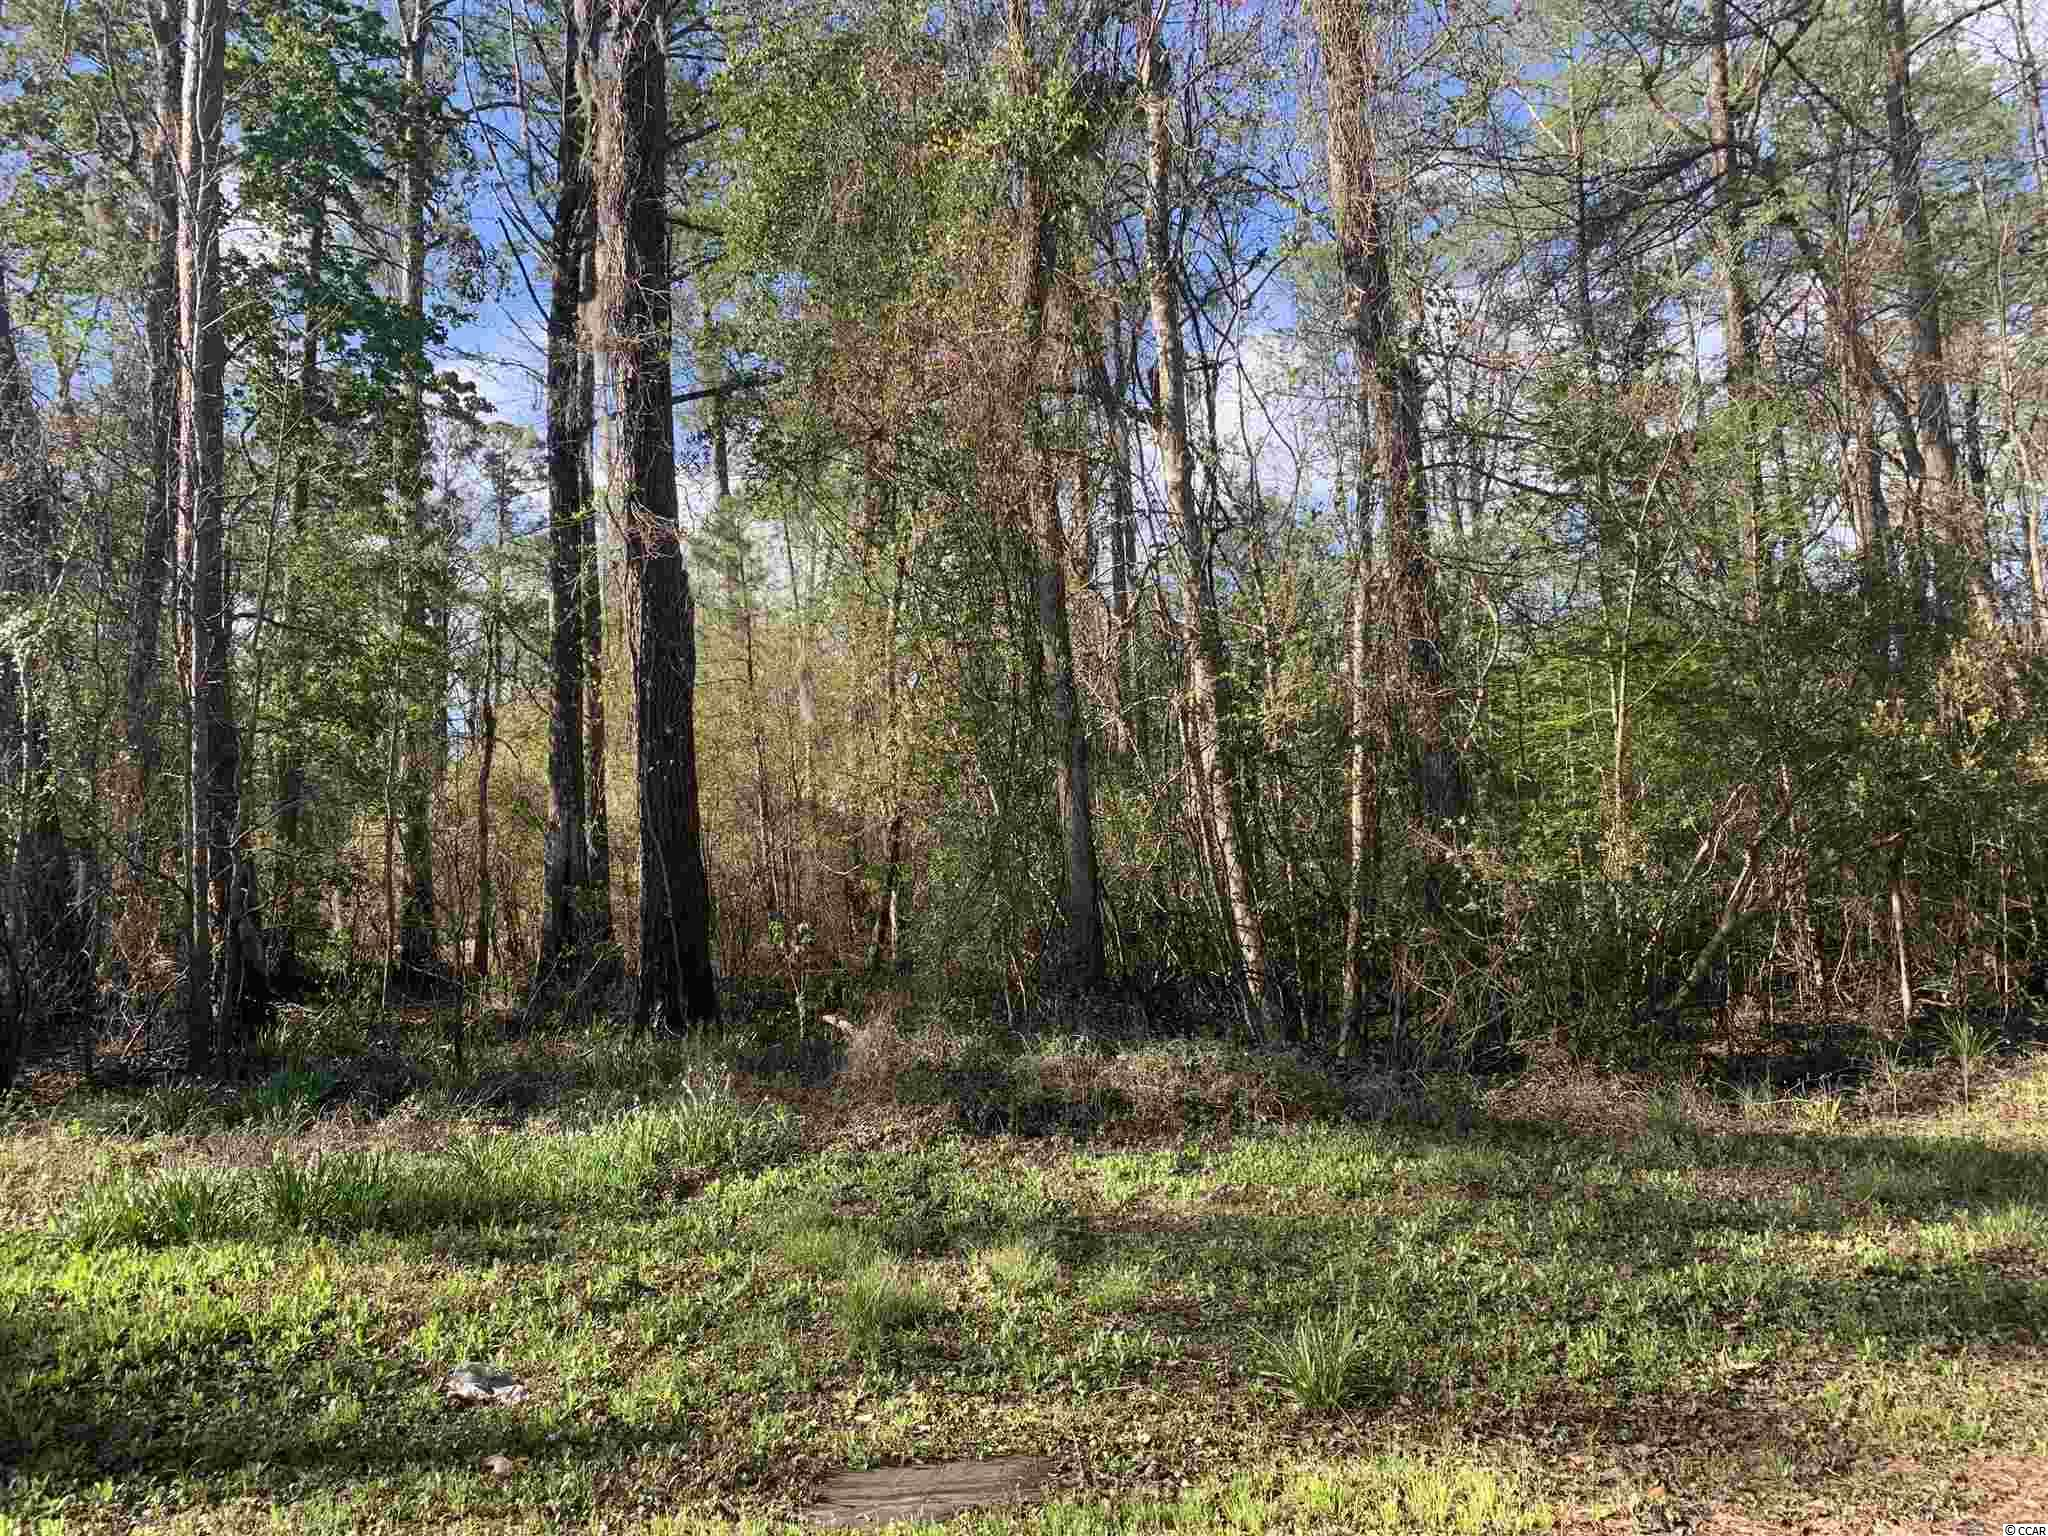 This is a beautiful wooded 1.5 acre lot that sits just adjacent to the Intracoastal Waterway.  The view that the land offers brings so much value to this property.  If you are a lover of both land and water this property is a must see!  It sits just 2.6 miles from Enterprise Public Boat Landing and 4.9 miles from Peachtree Public Boat Landing which makes it easily accessible to the Intracoastal Waterway if you own your own boat.